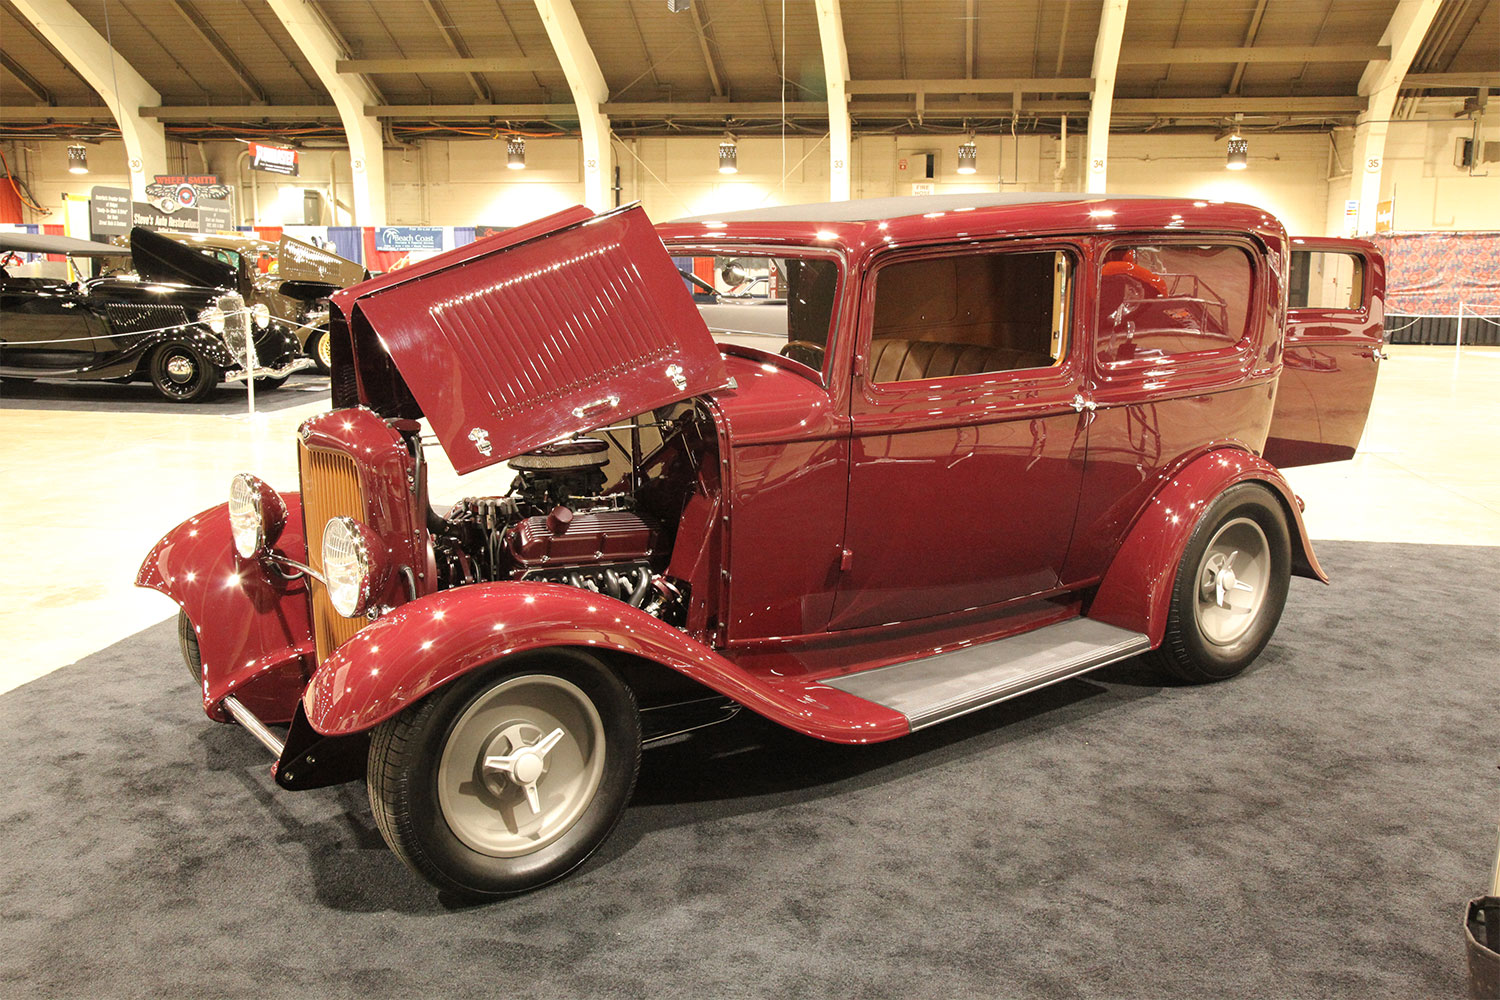 George Poteet's '32 Ford sedan delivery was built at Kemp's Rod & Restoration with an eye toward resto rod (with an added touch of performance). The body started as a sedan, but Kemp's converts them to the sedan delivery design with the addition of a new rear quarter and door mechanism. A lot of work to make it look stock!